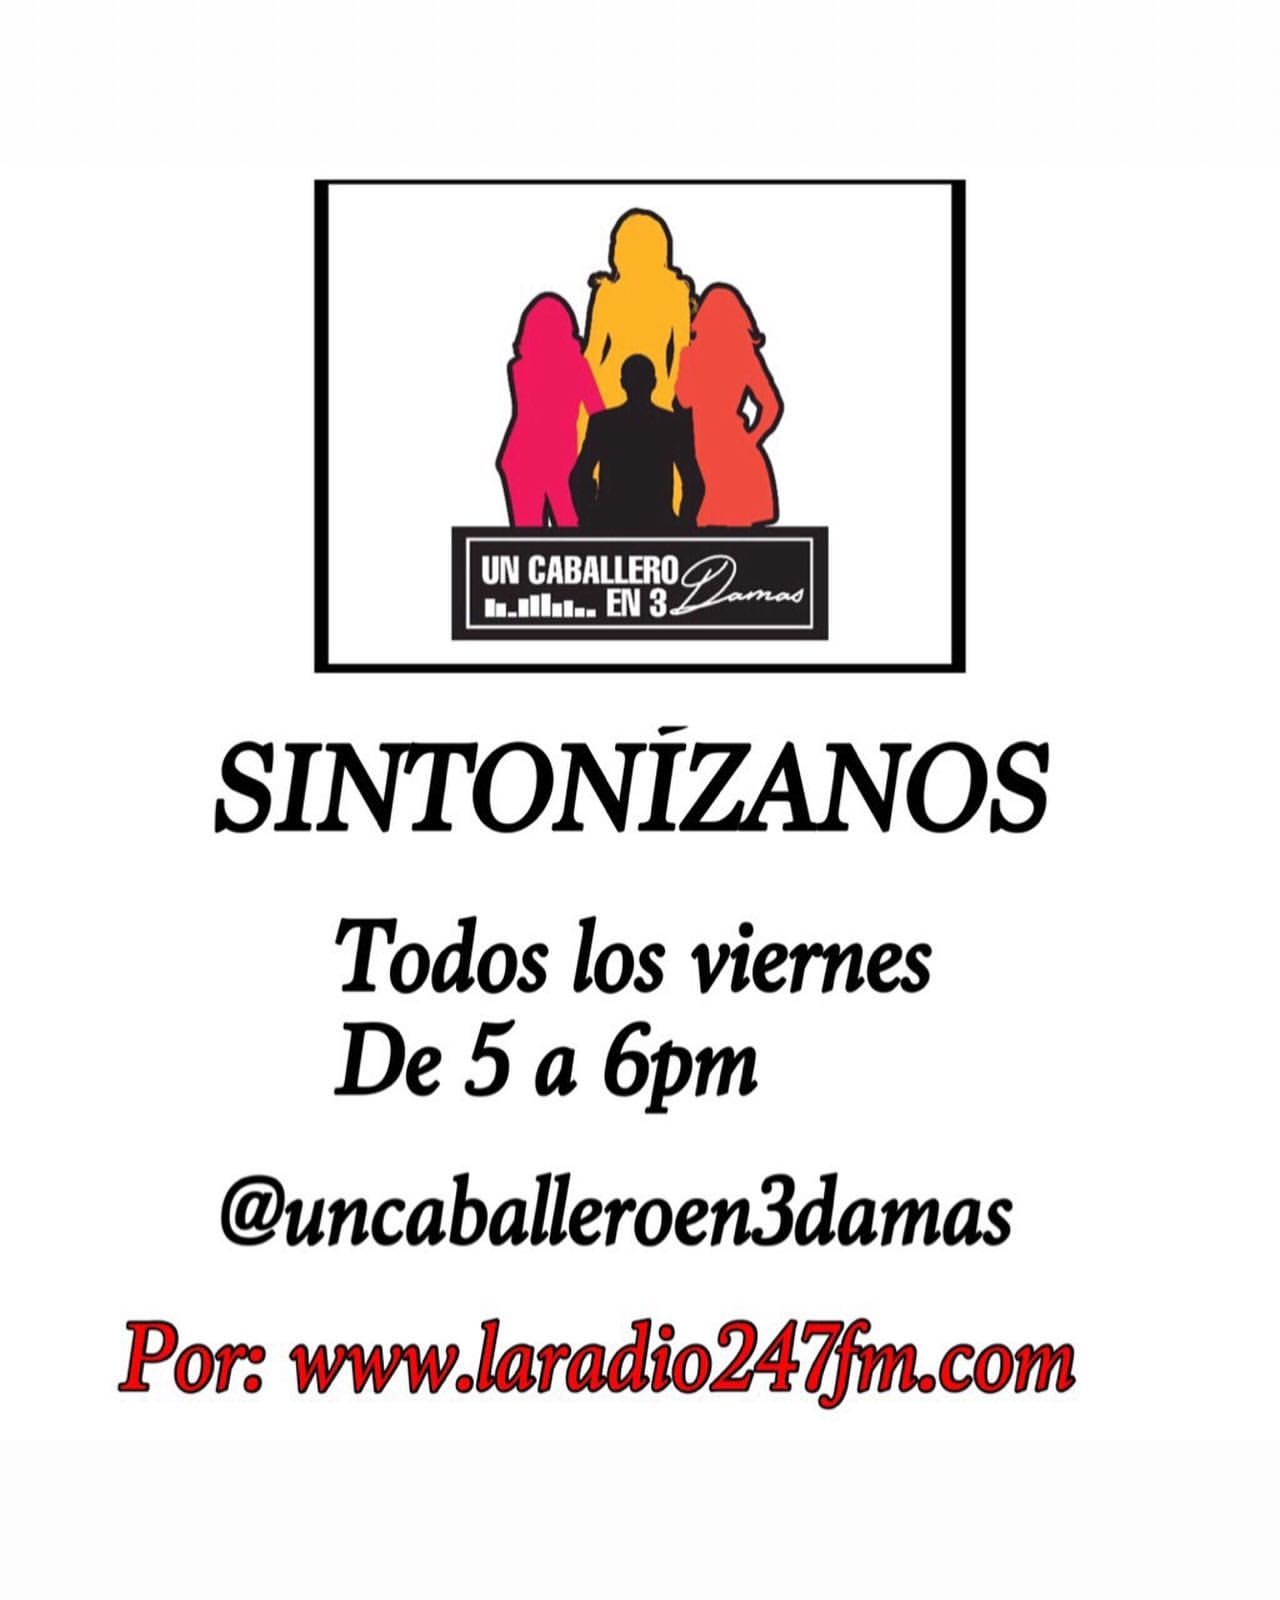 UN CABALLERO EN3 DAMAS BLOQUE 1 6 DIC #LARADIO247FM https://youtu.be/Vk6C_iyoho8